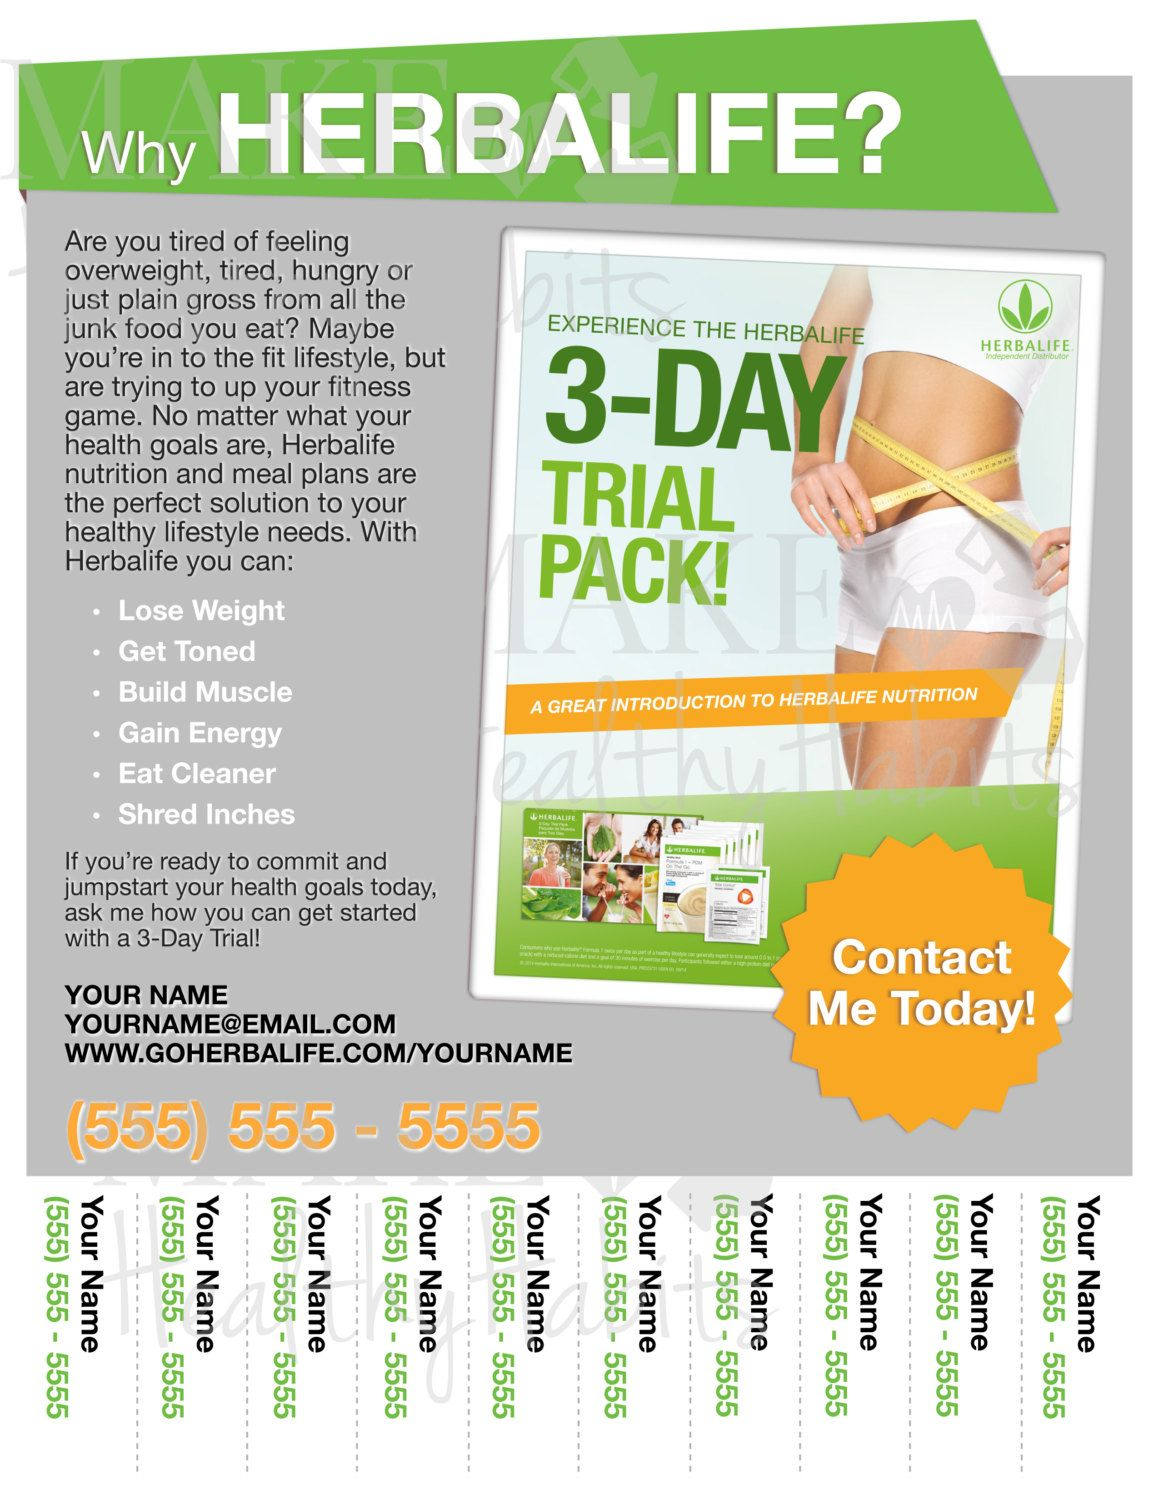 herbalife are you ready to get started goherbalife herbalife are you ready to get started middot mestrum herbalife printable herbalifeflyers